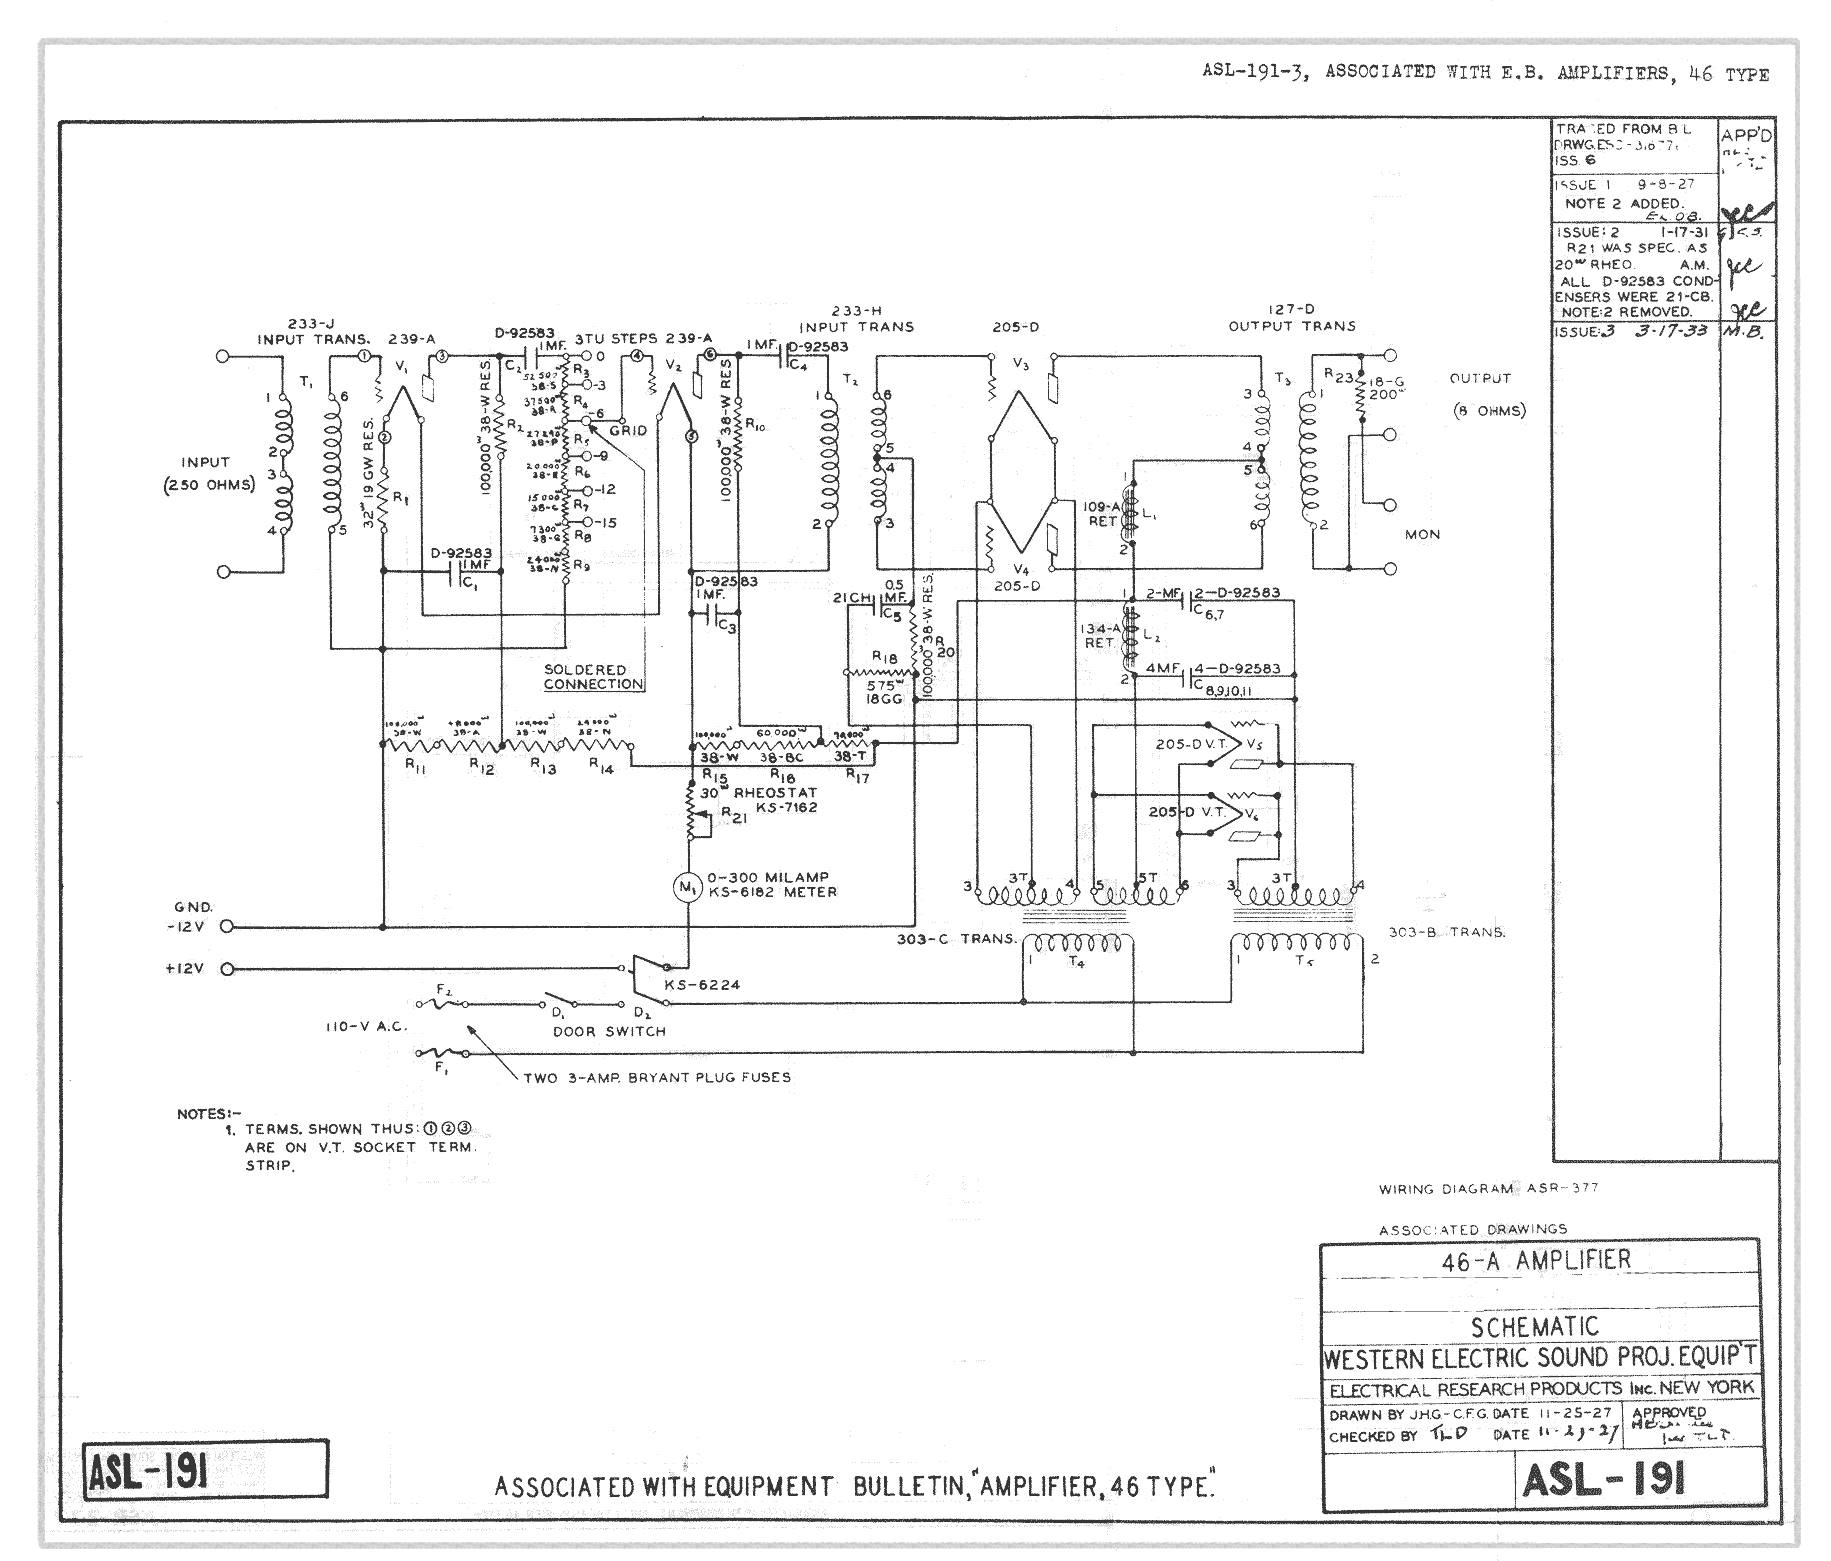 100 Amplifiers Part 1 1916 45 Lilienthal Engineering Vacuum Tube Tesla Coil Circuit Diagram Free Download Wiring Western Electric 46 A Original Schematic